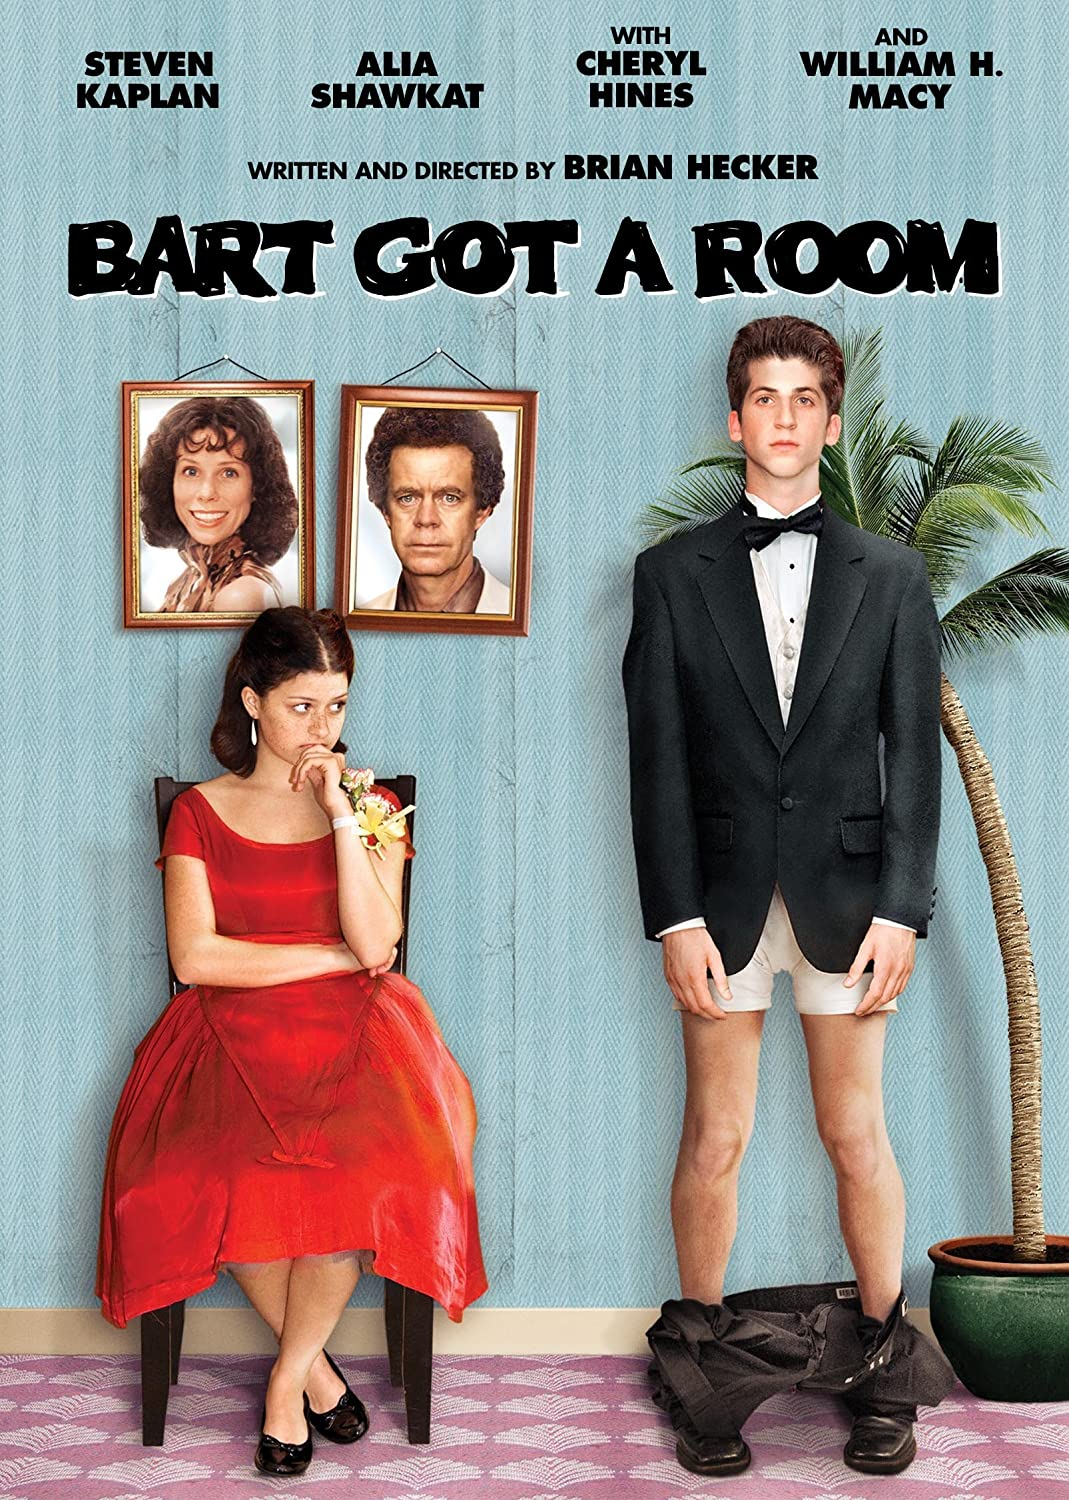 Bart Got a Room DVD 2008 Region 1 US Import NTSC: Amazon.co.uk: DVD & Blu-ray